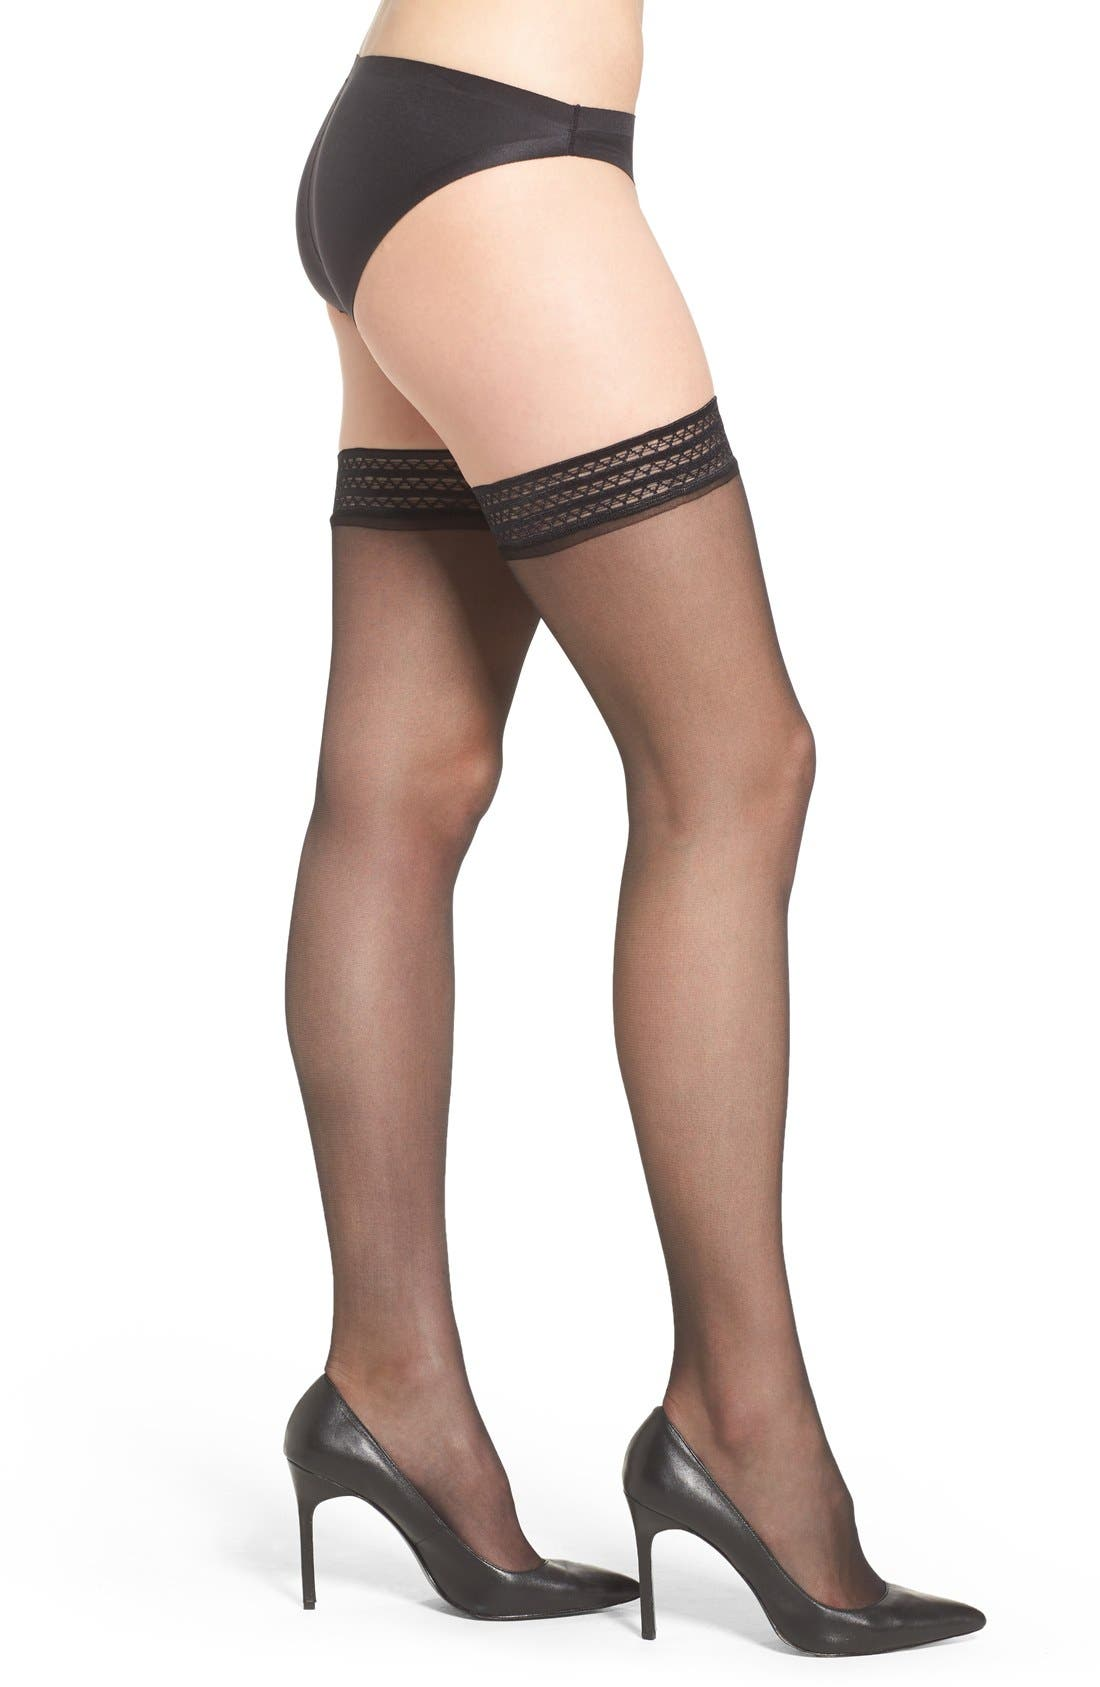 Sheer Thigh High Stay-Up Stockings,                         Main,                         color, BLACK